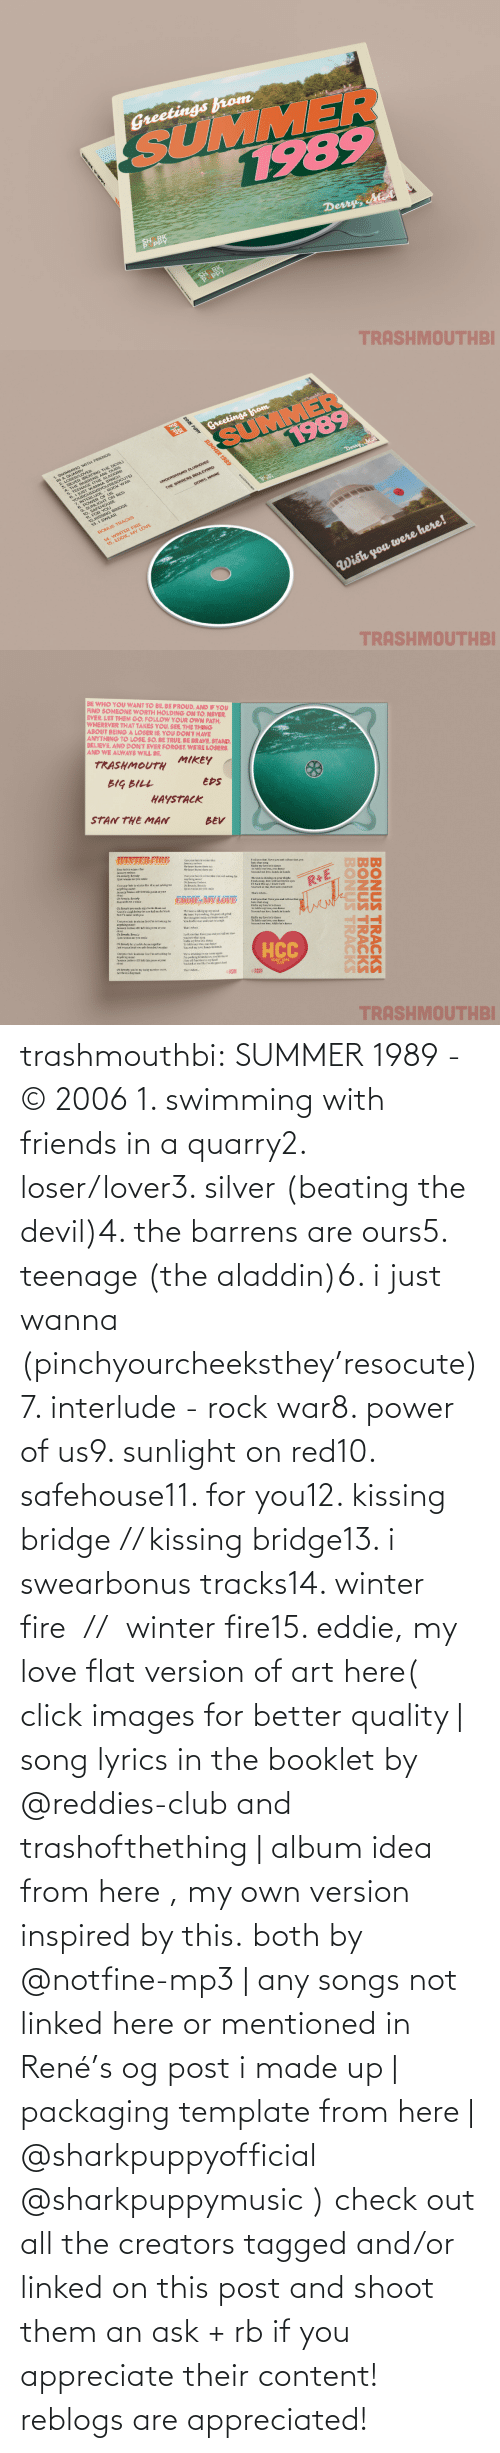 Both: trashmouthbi: SUMMER 1989 - © 2006 1. swimming with friends in a quarry2. loser/lover3. silver (beating the devil)4. the barrens are ours5. teenage (the aladdin)6. i just wanna (pinchyourcheeksthey'resocute)7. interlude - rock war8. power of us9. sunlight on red10. safehouse11. for you12. kissing bridge // kissing bridge13. i swearbonus tracks14. winter fire  //  winter fire15. eddie, my love flat version of art here( click images for better quality | song lyrics in the booklet by @reddies-club​ and trashofthething | album idea from here , my own version inspired by this. both by @notfine-mp3​ | any songs not linked here or mentioned in René's og post i made up | packaging template from here | @sharkpuppyofficial​ @sharkpuppymusic​ ) check out all the creators tagged and/or linked on this post and shoot them an ask + rb if you appreciate their content! reblogs are appreciated!